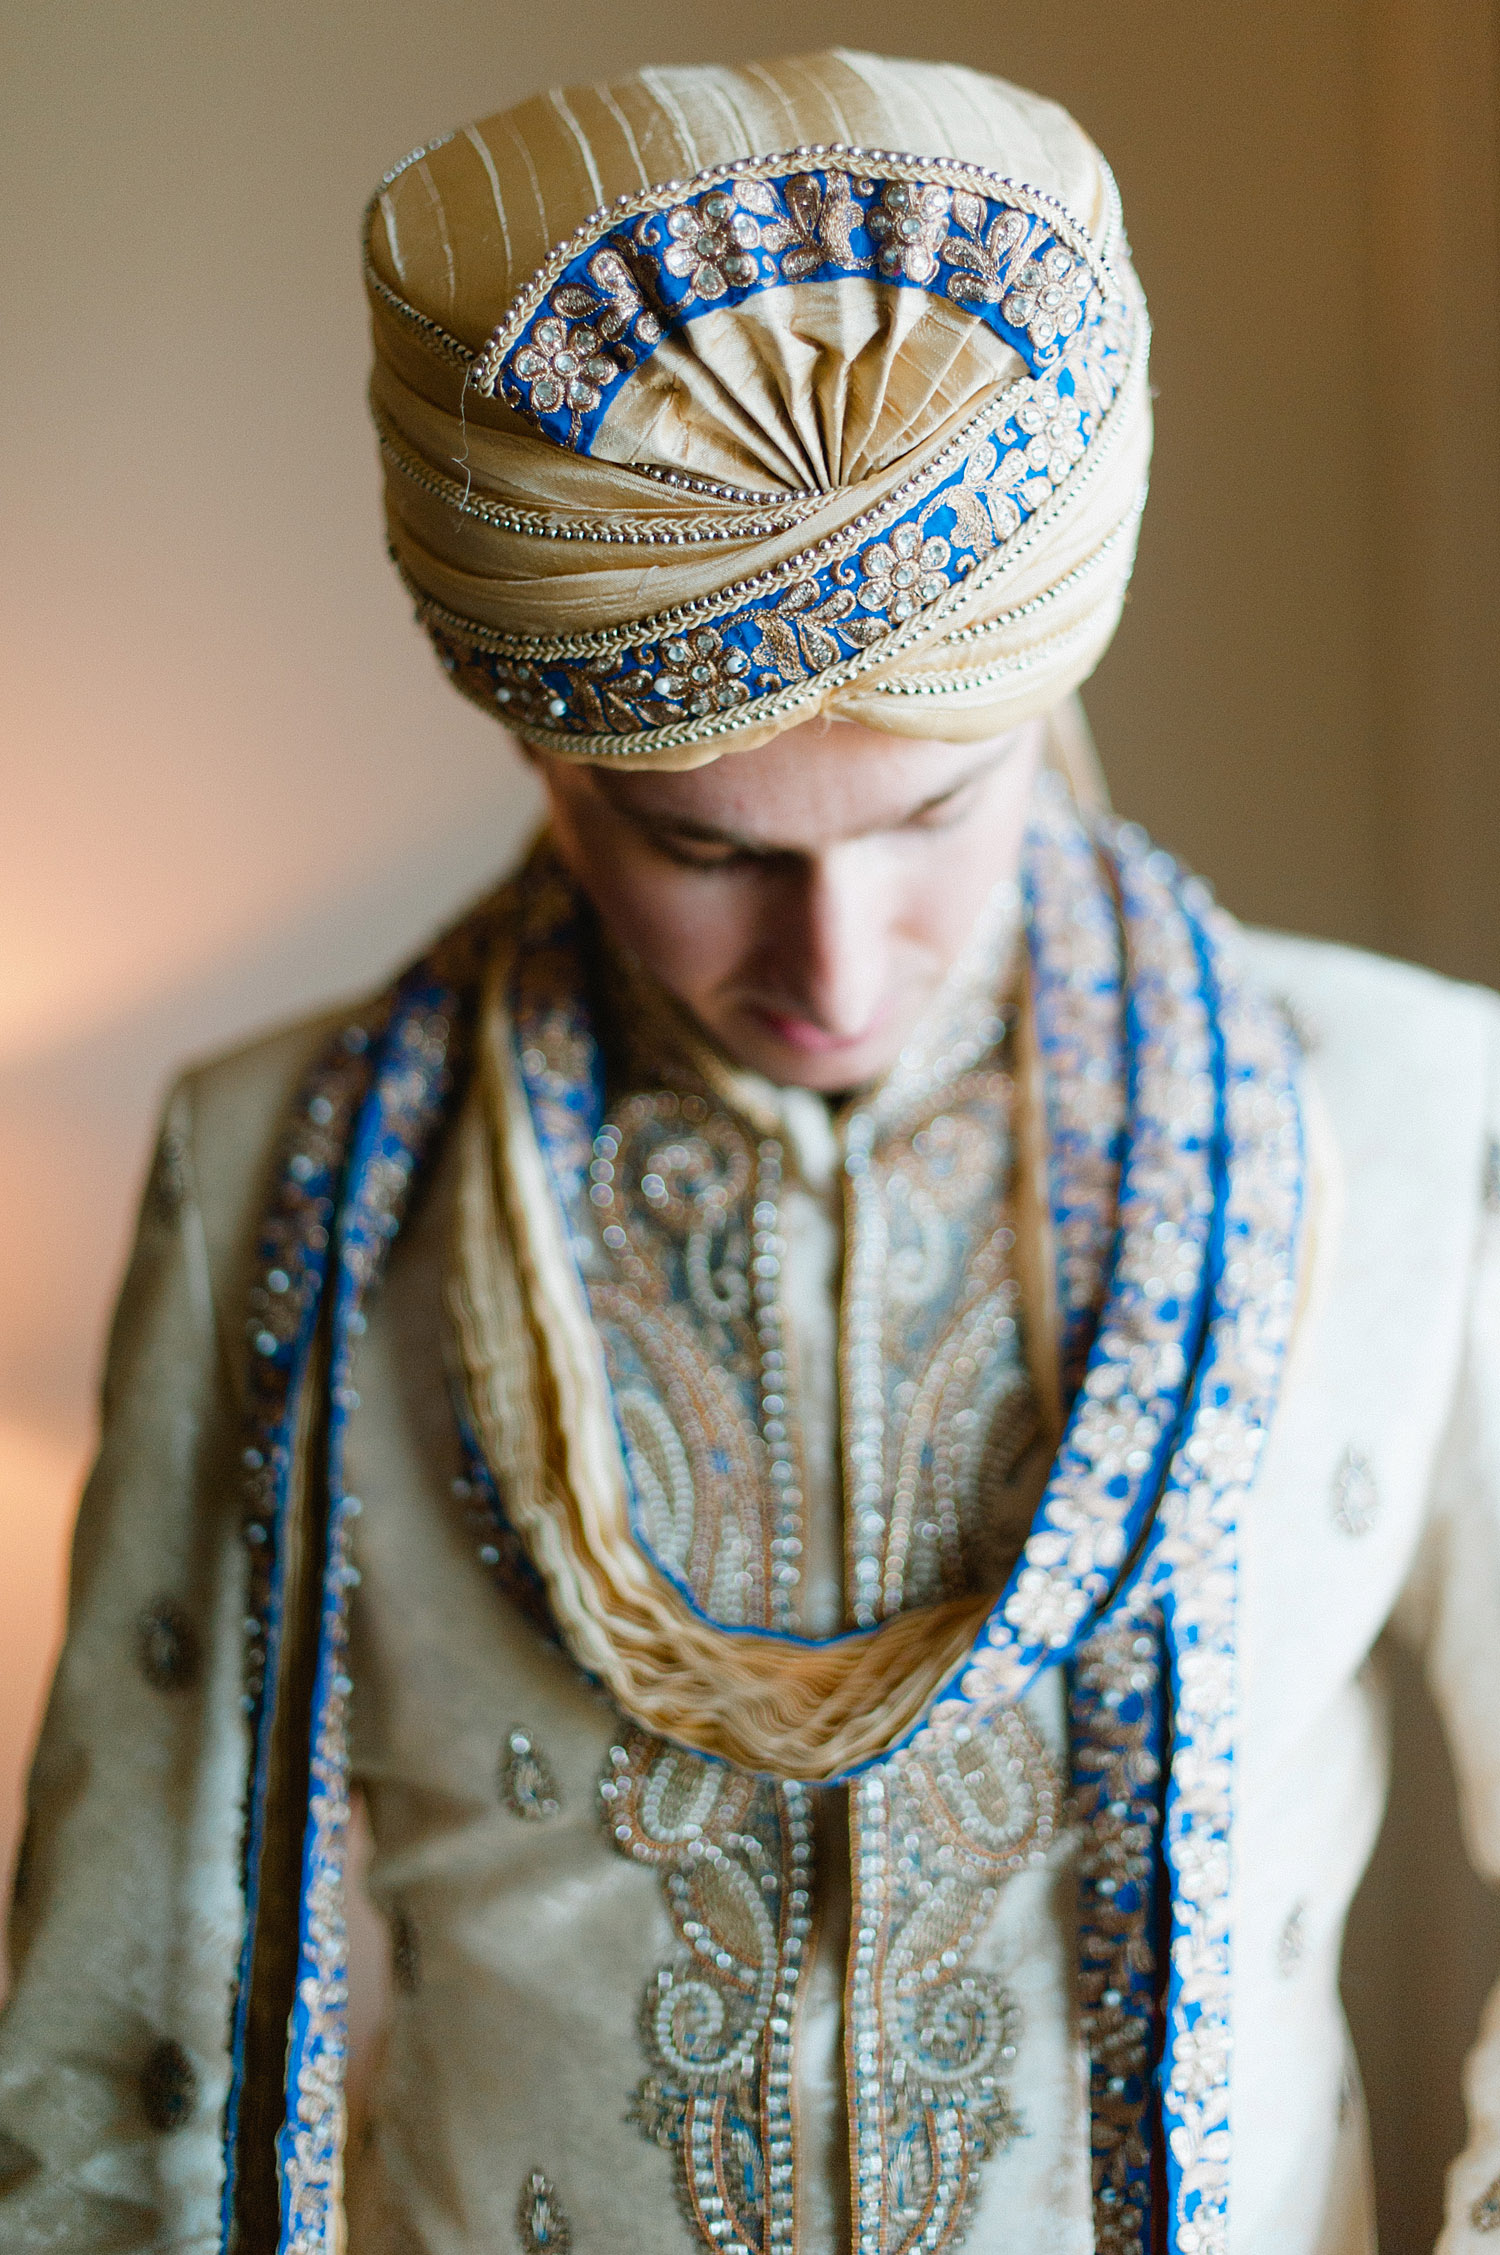 groom gets dressed at his hindu wedding at vizcaya miami where Destination Wedding Photographer Lexia frank - a top indian wedding photographer for luxury indian weddings - photographs this indian wedding on film as she prefers the soft skin tones and vibrant colors for indian weddings in india and worldwide.